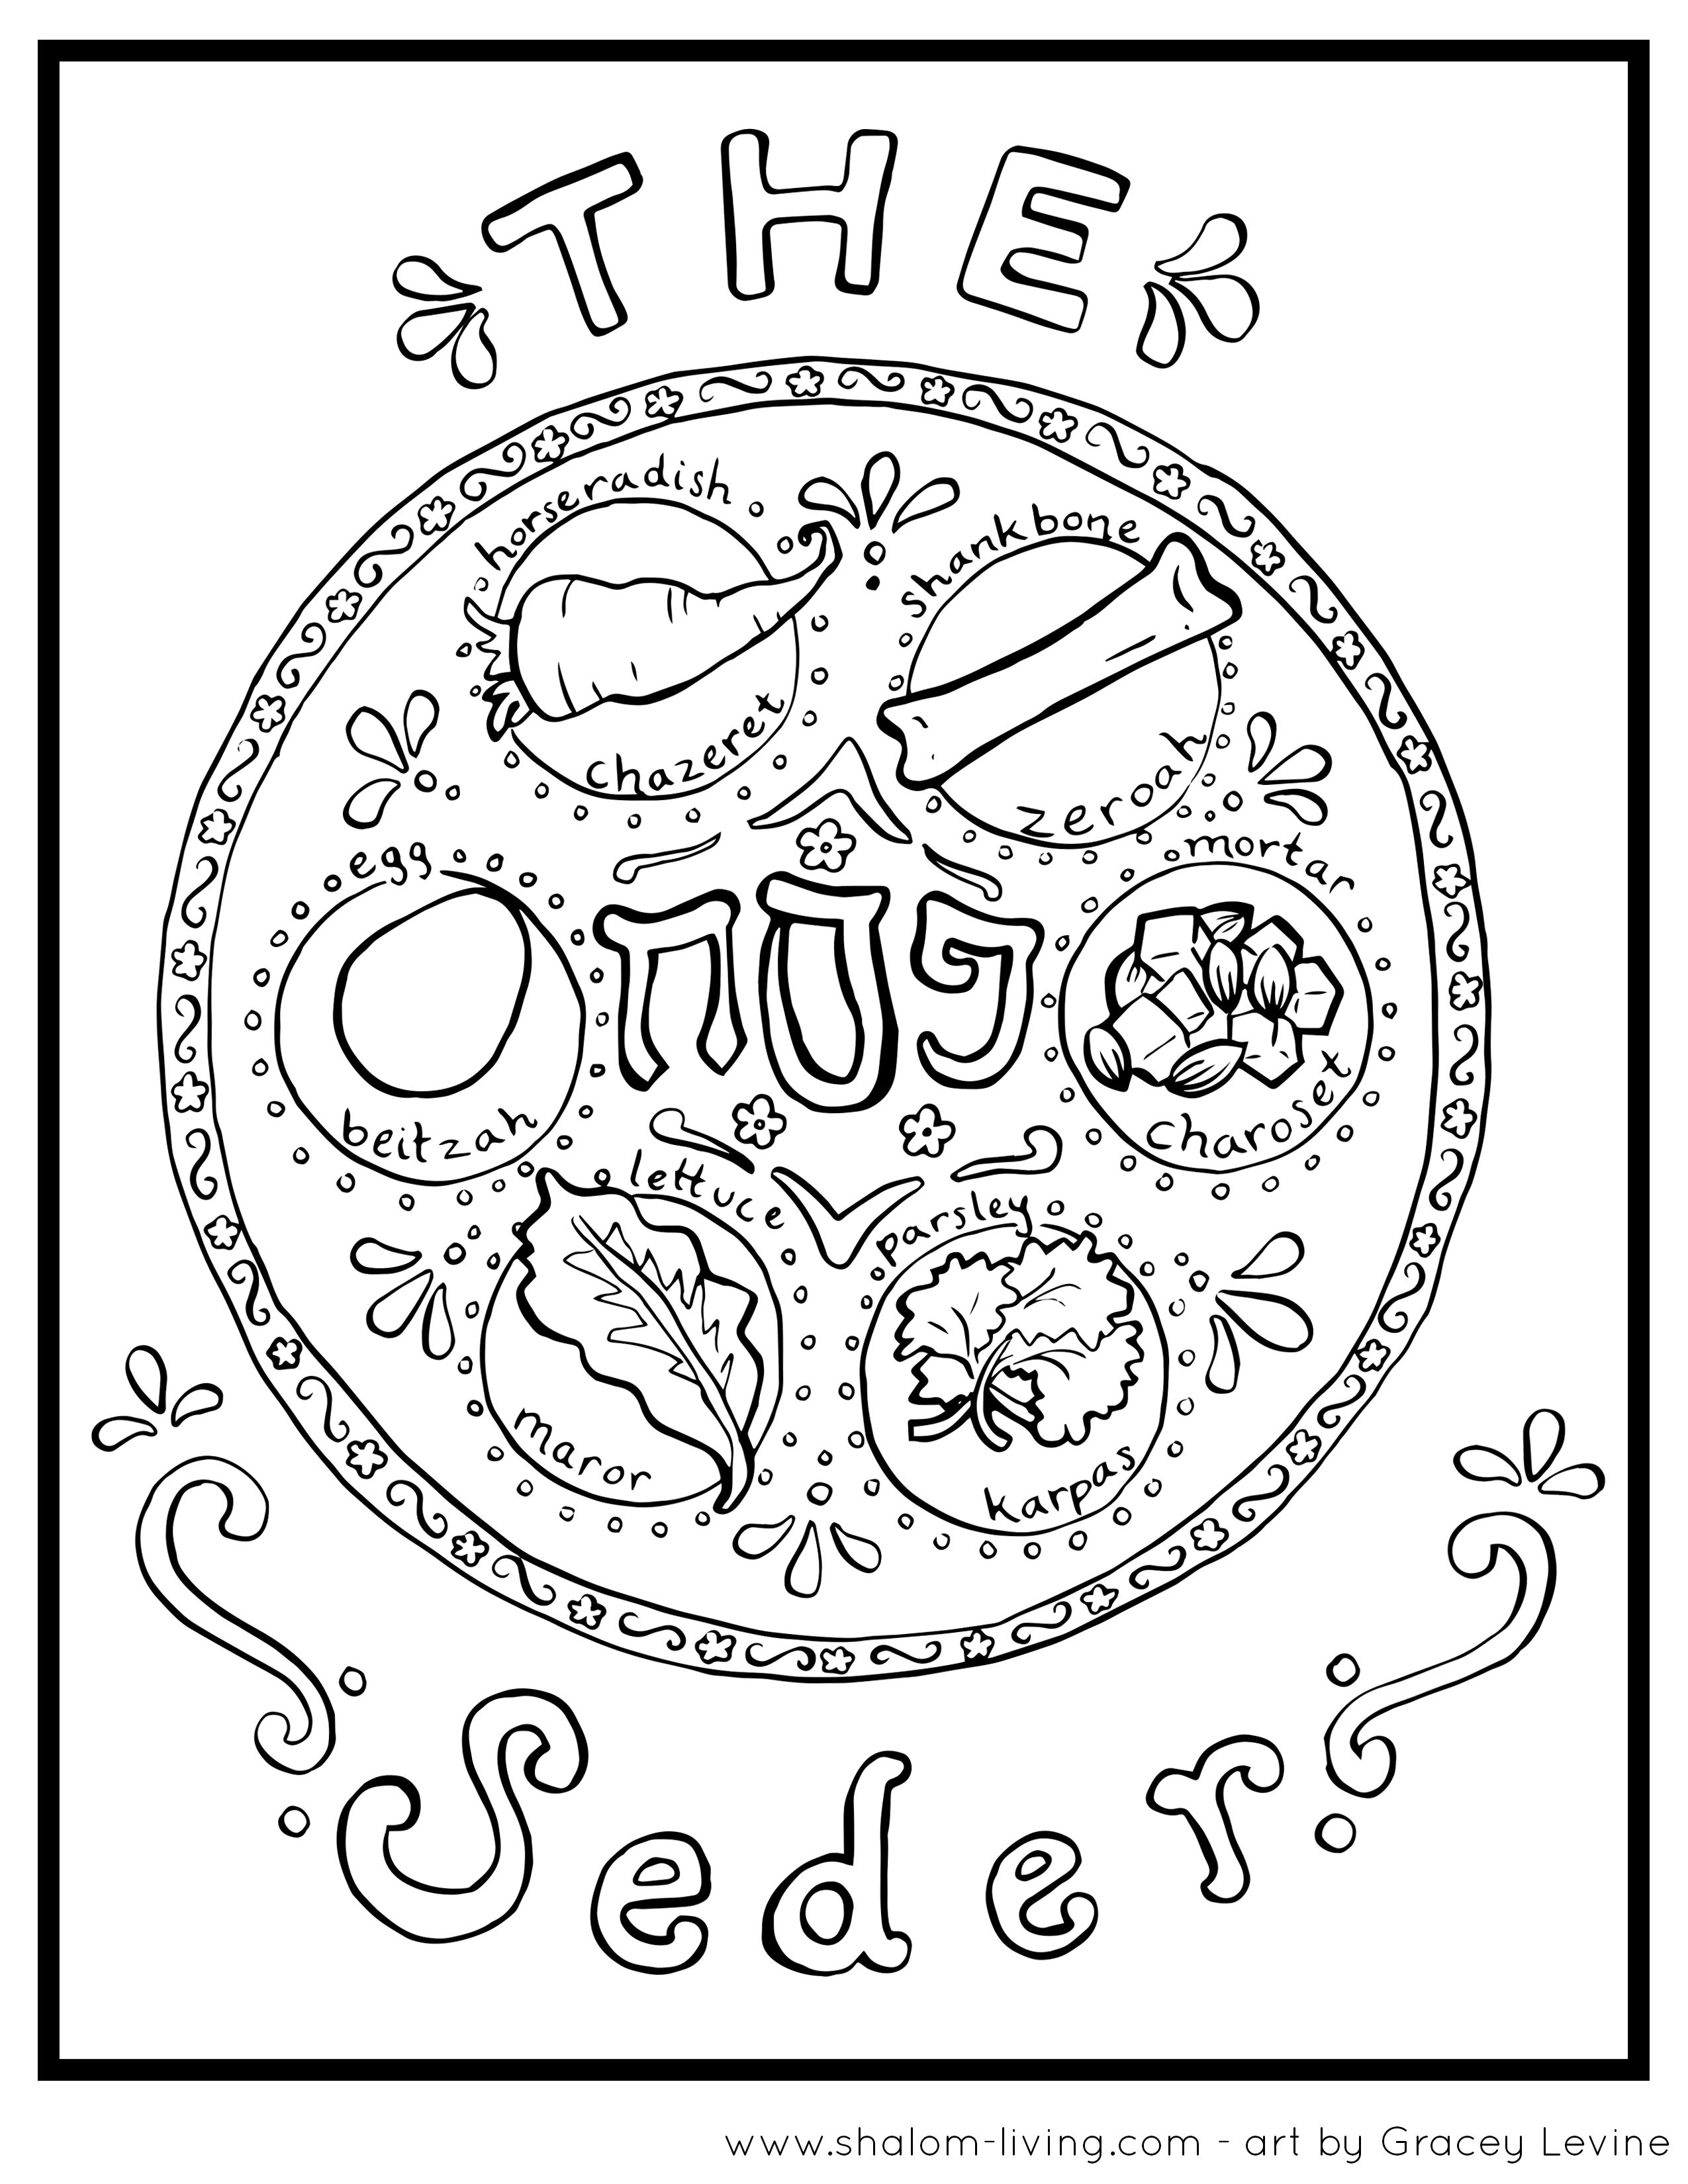 Free Passover Coloring Pages At Shalom Living! | Passover | Passover - Free Printable Messianic Haggadah